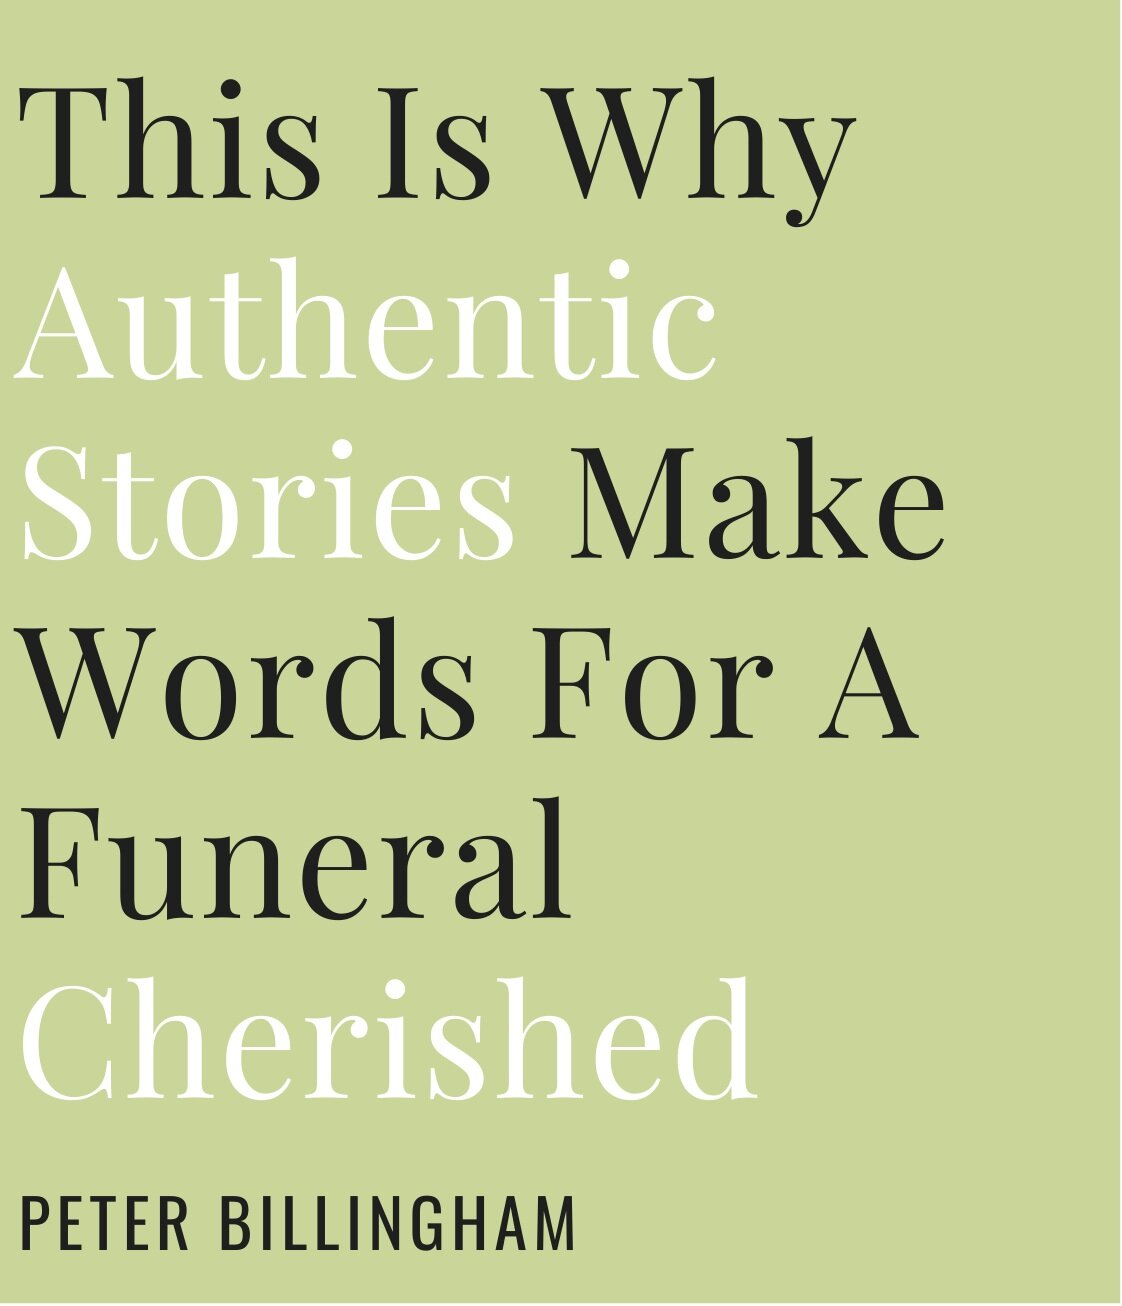 This Is Why Authentic Stories Make Words For A Funeral Cherished